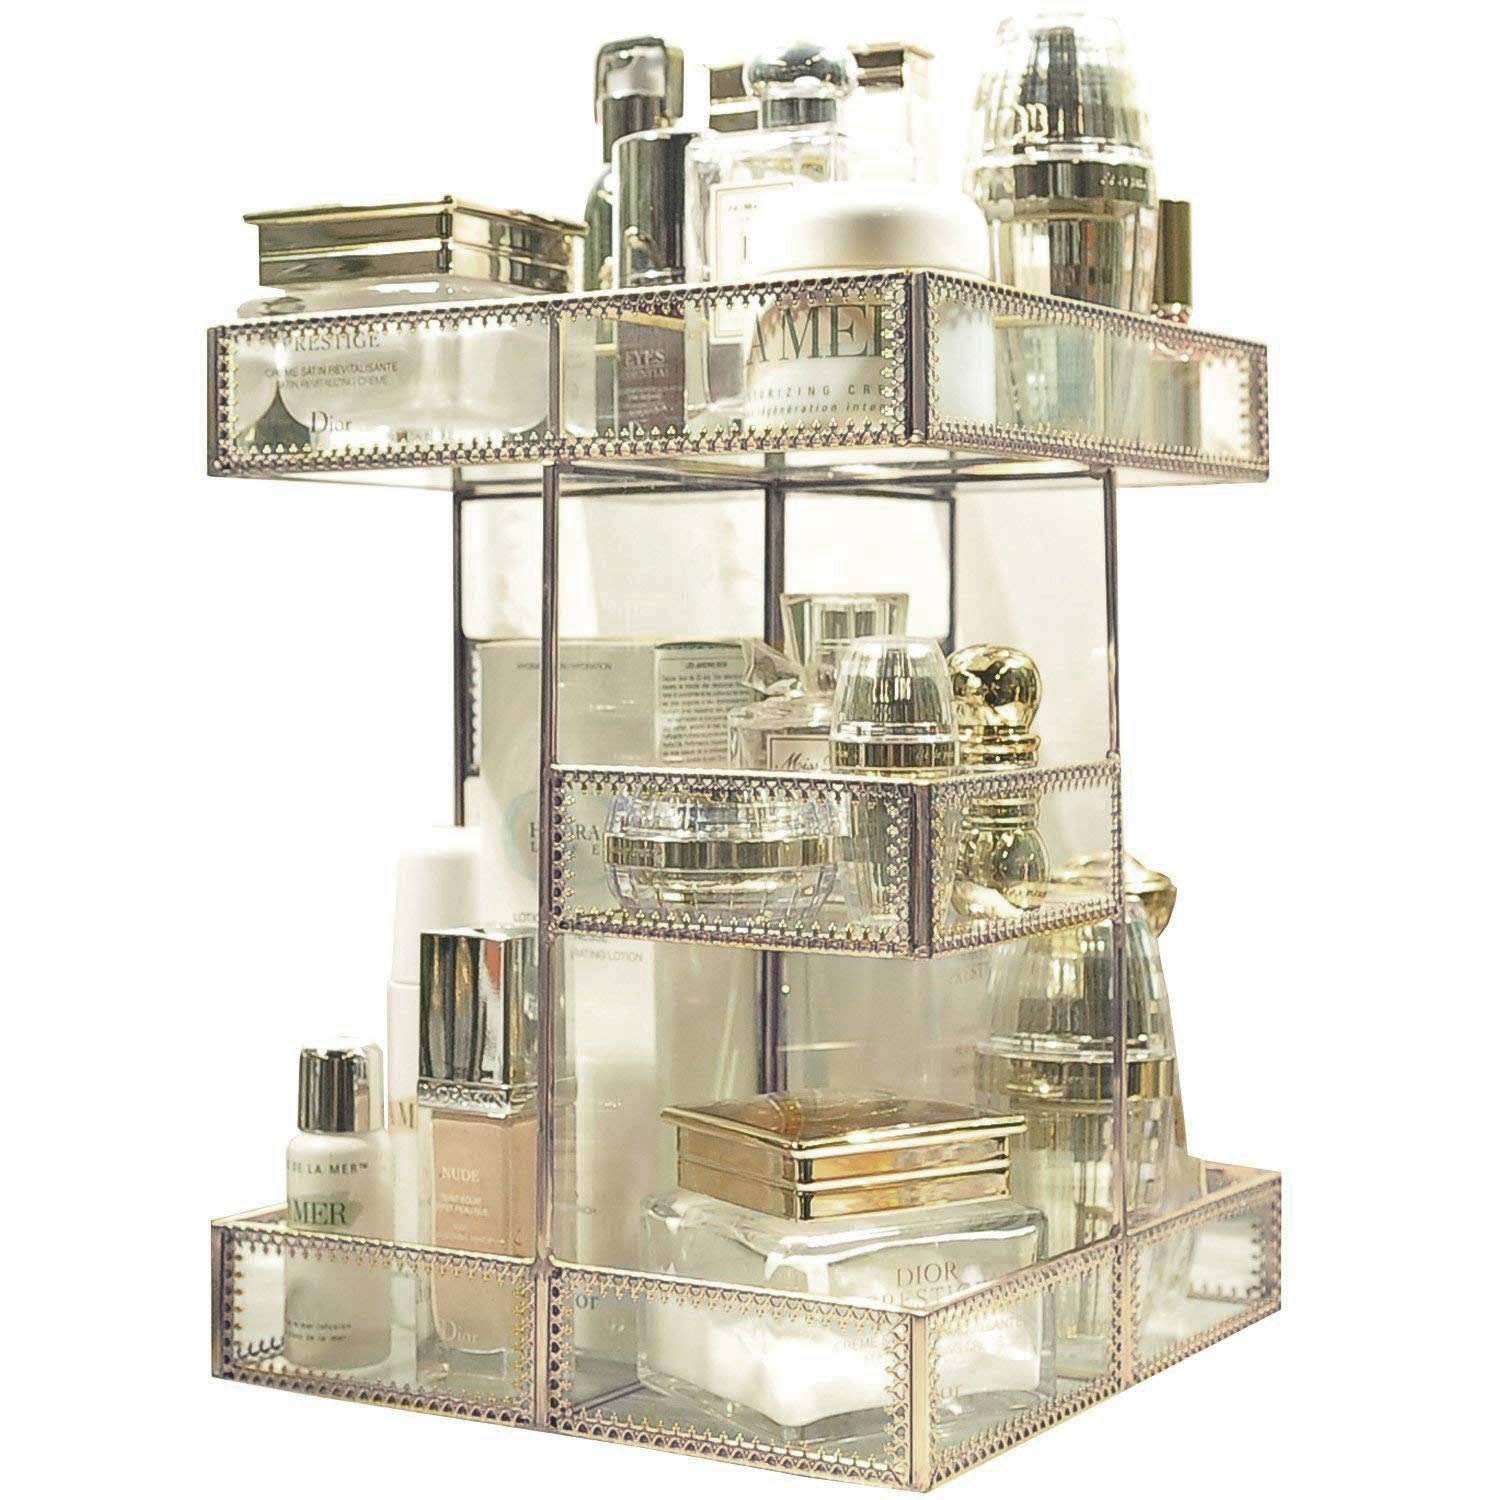 360 Degree Rotation Glass Makeup Organizer Antique Countertop Vanity Cosmetic Storage Box Mirror Glass Beauty Display, Brass Spin Large Capacity Holder for Brushes Lipsticks Skincare Toner (Brass)